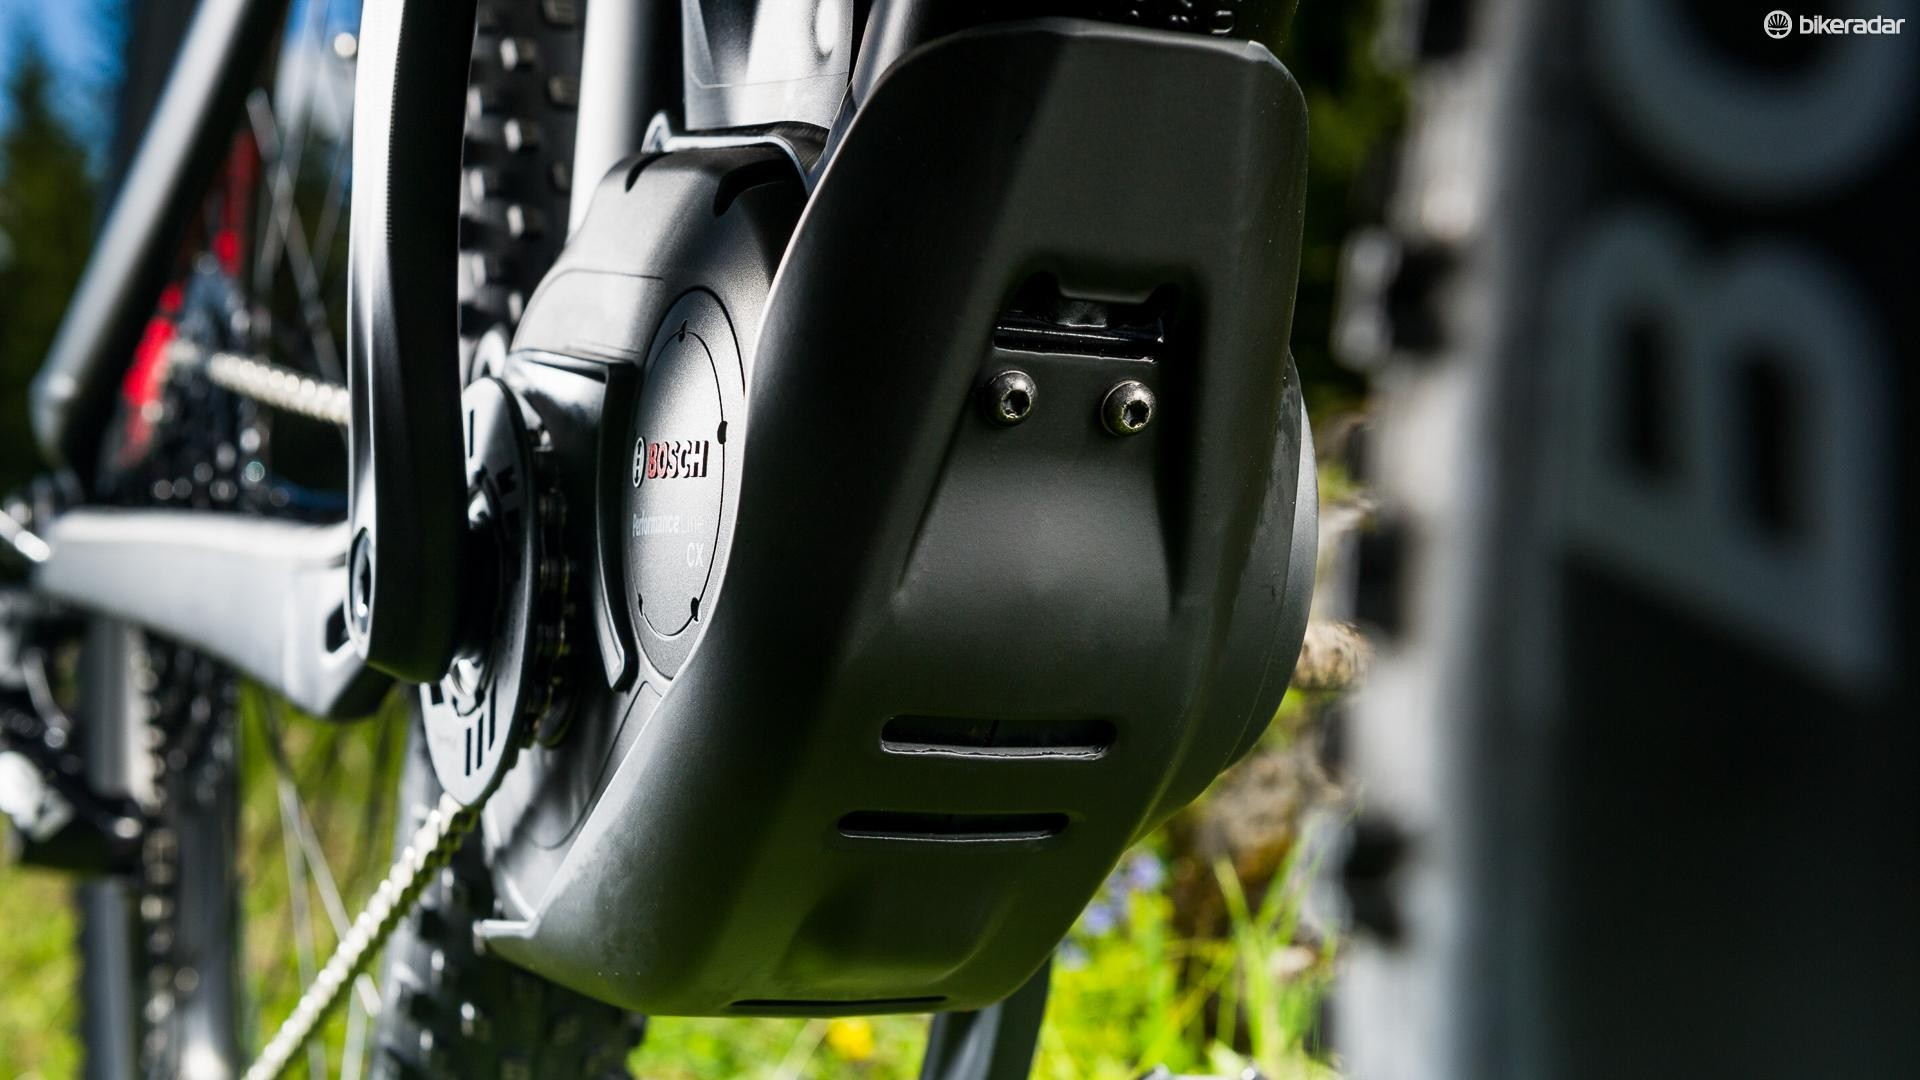 The Bosch Performance CX pedal-assist motor pumps out up to 250W of extra juice